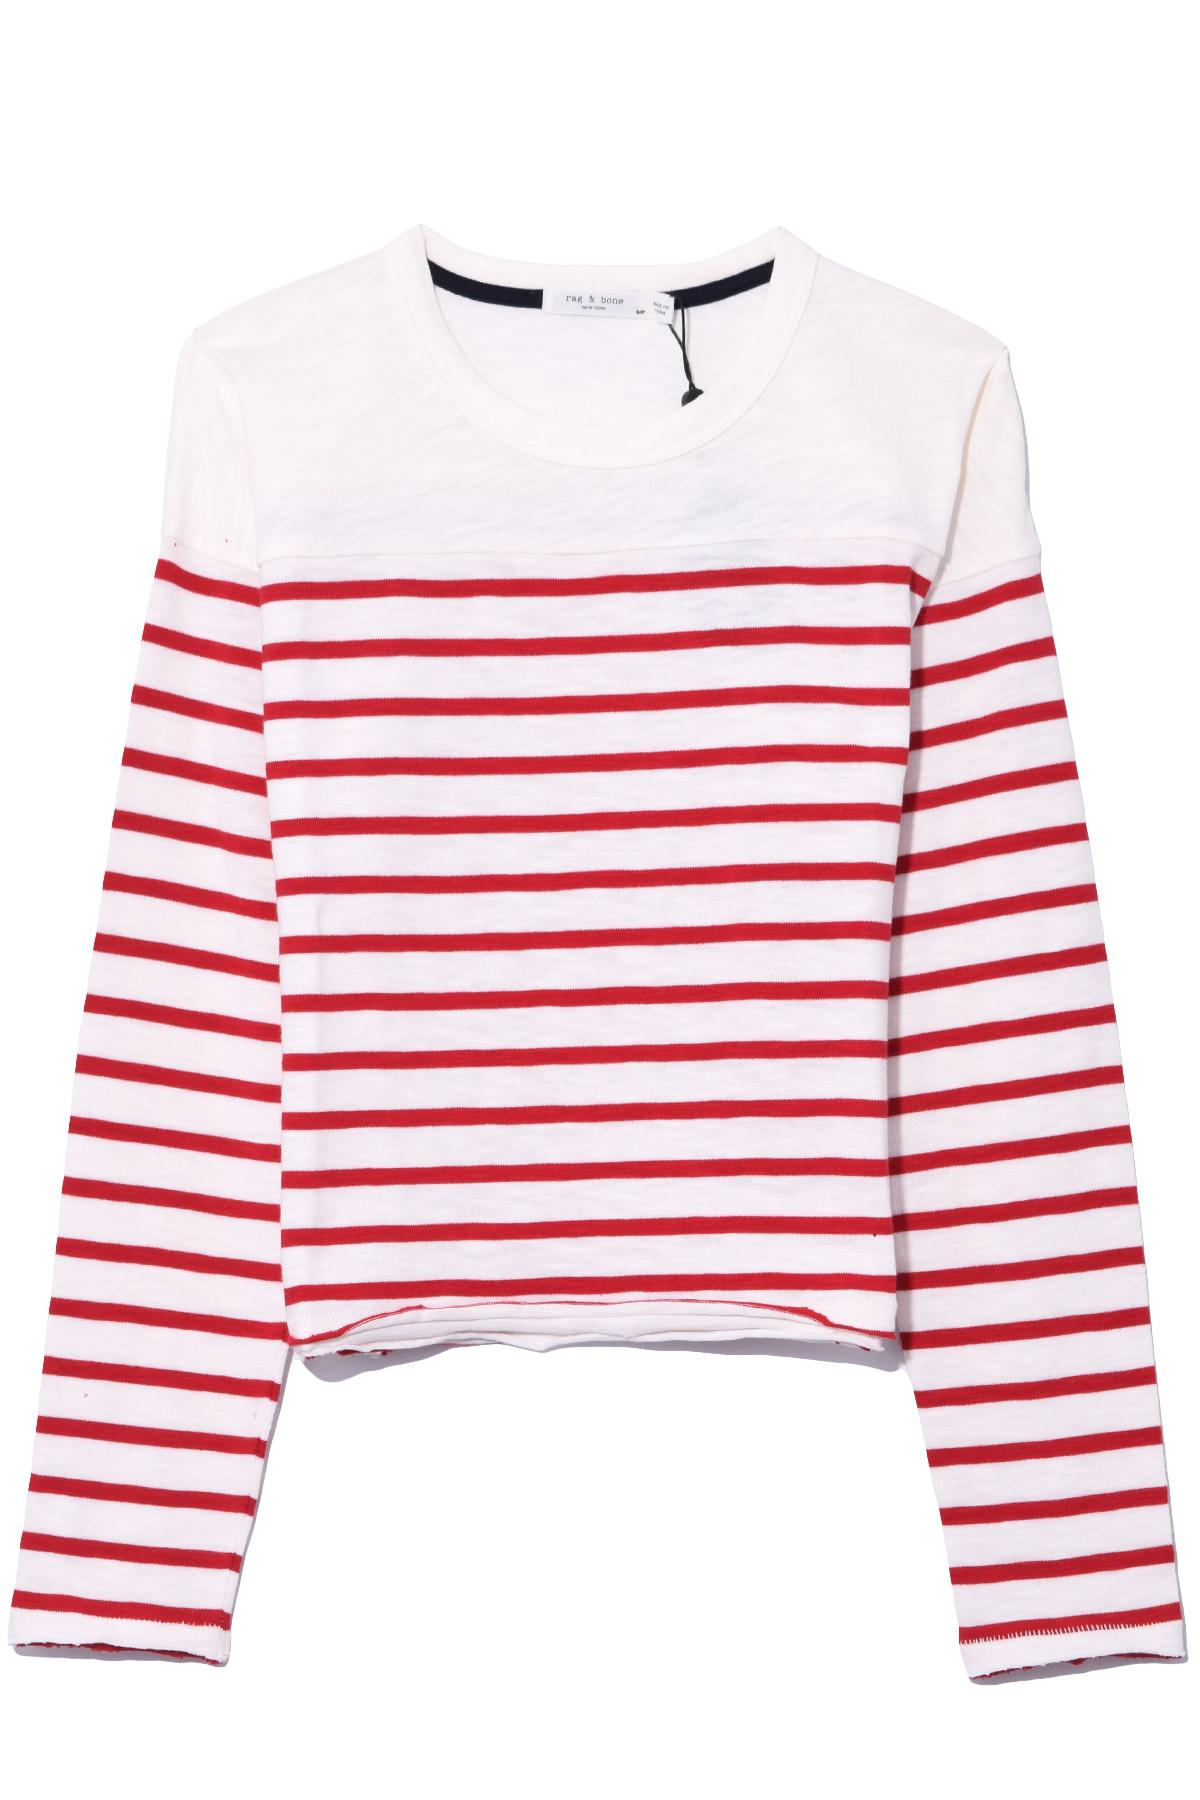 9e76567a16 Rag & Bone Halsey Striped Long Sleeve Tee In White/red in White - Lyst